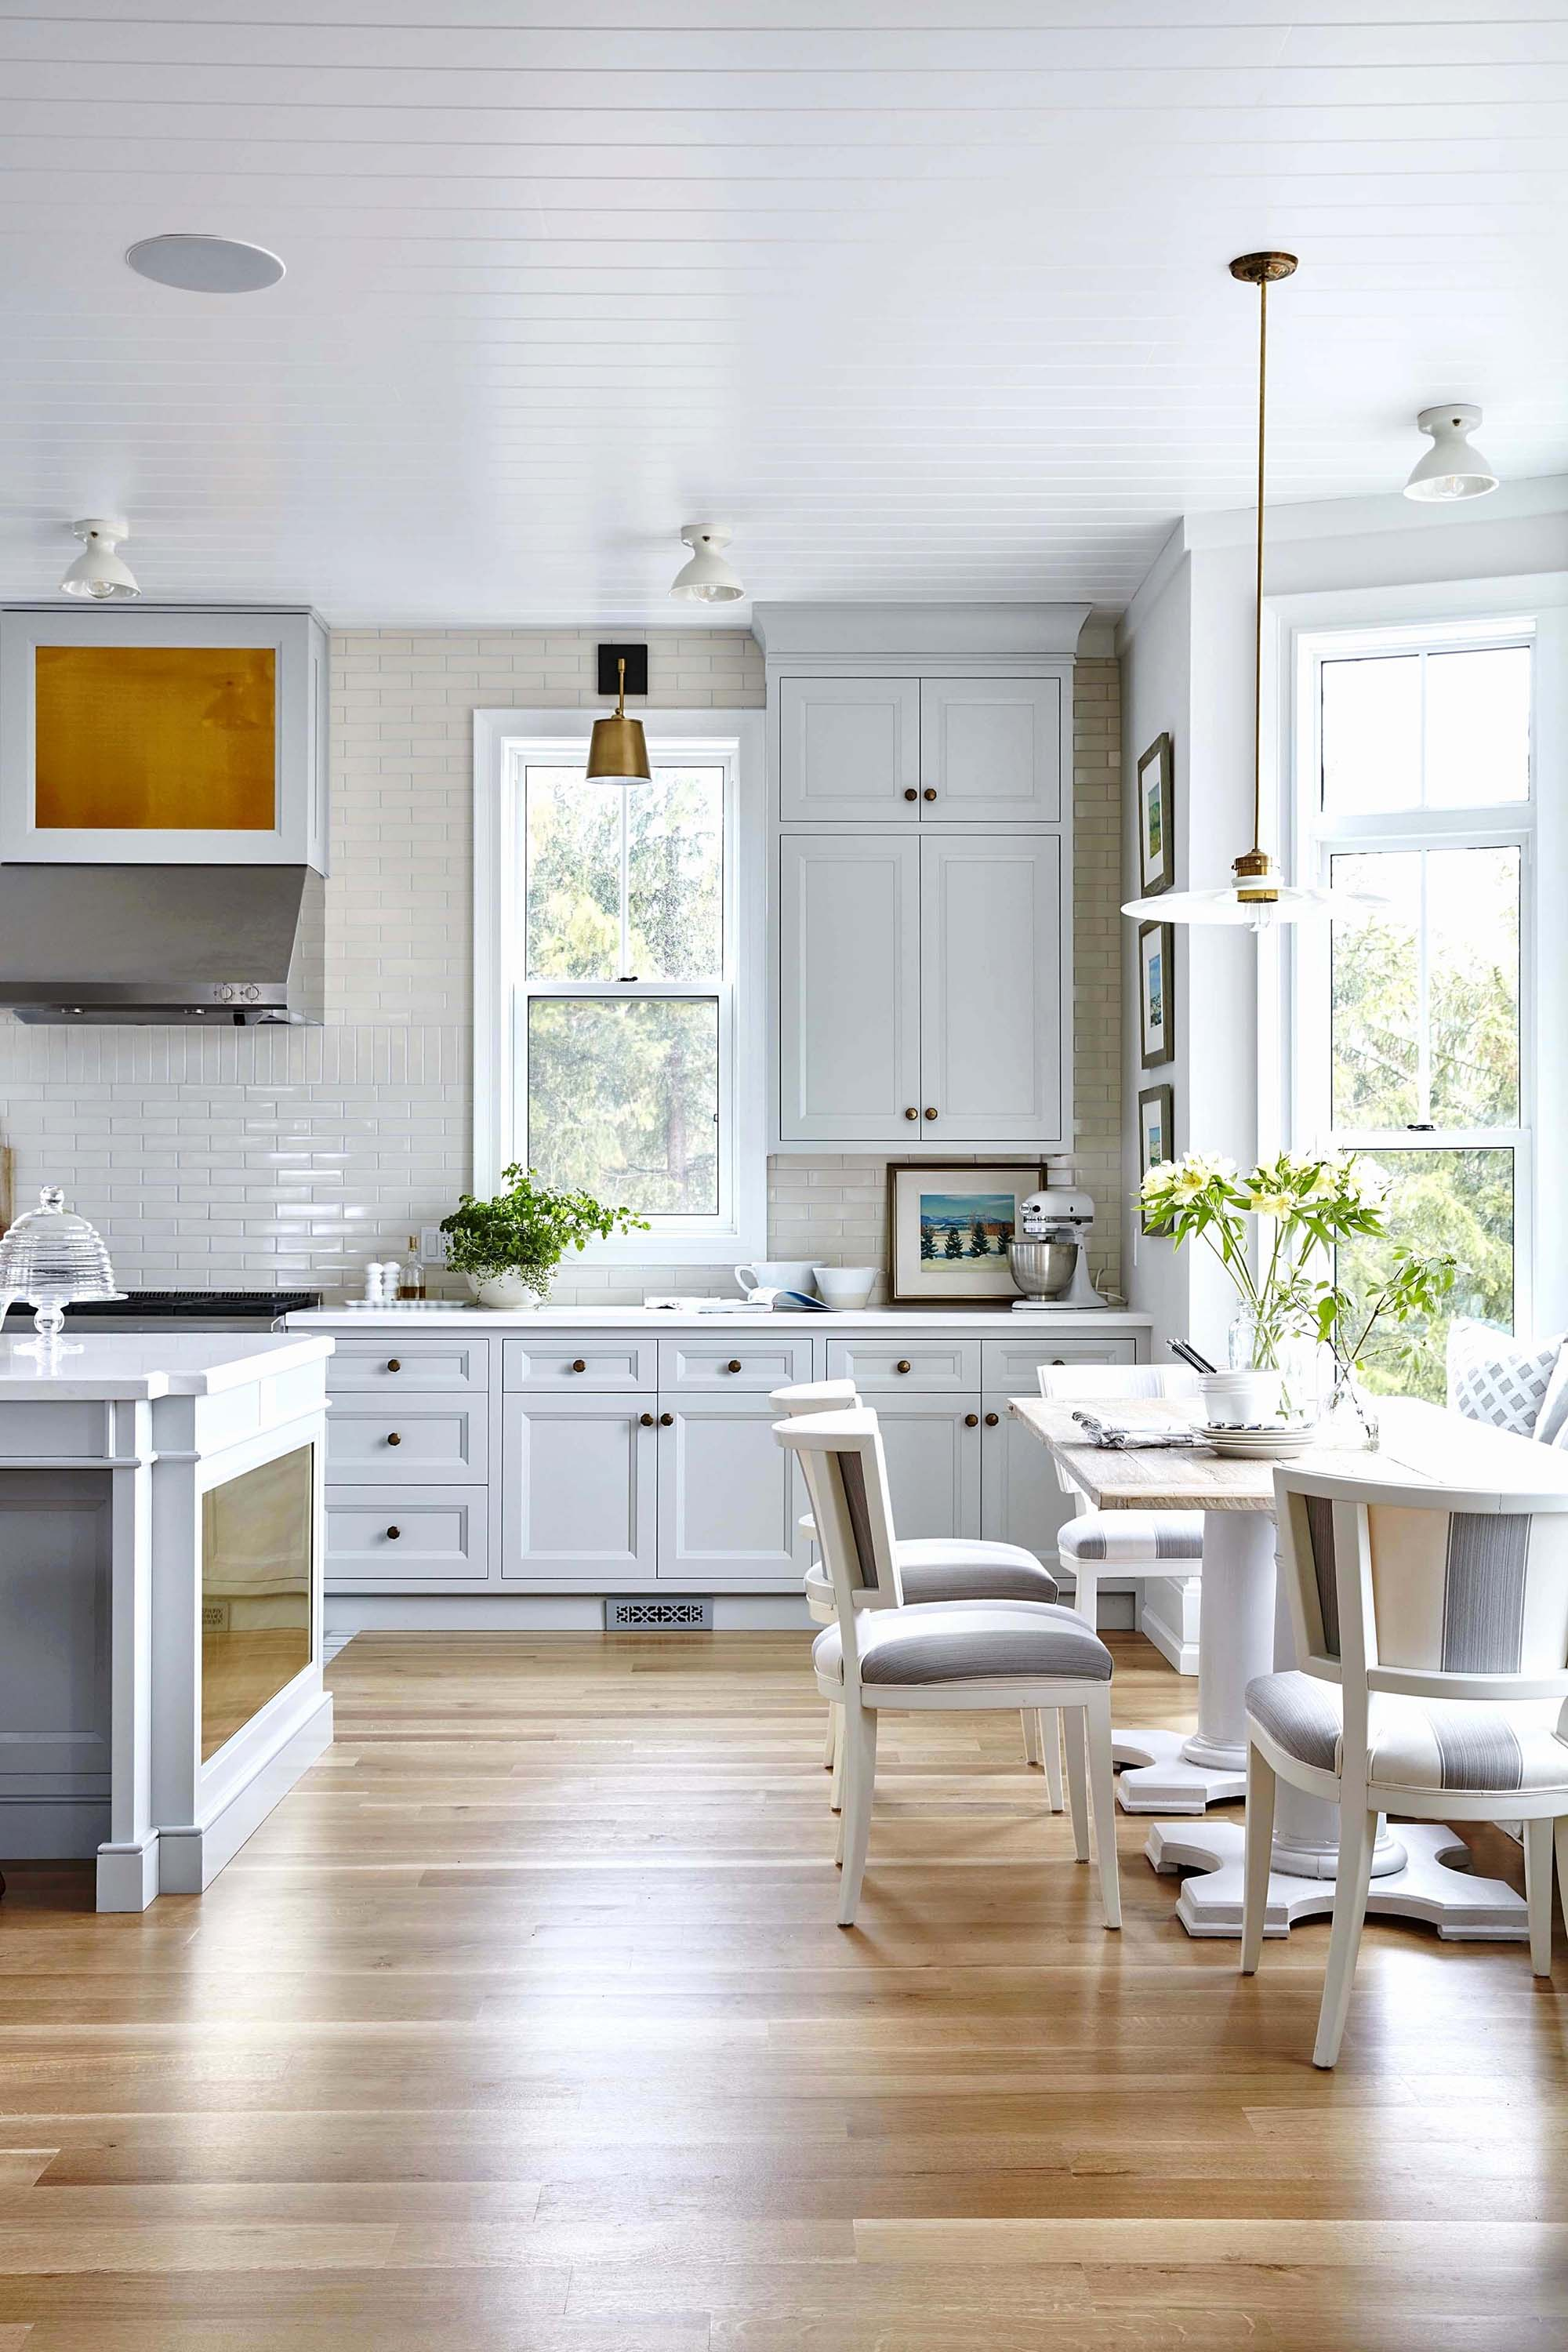 white room ideas all white kitchen white cabinets and countertop Gambrick Luxury Home Builder NJ